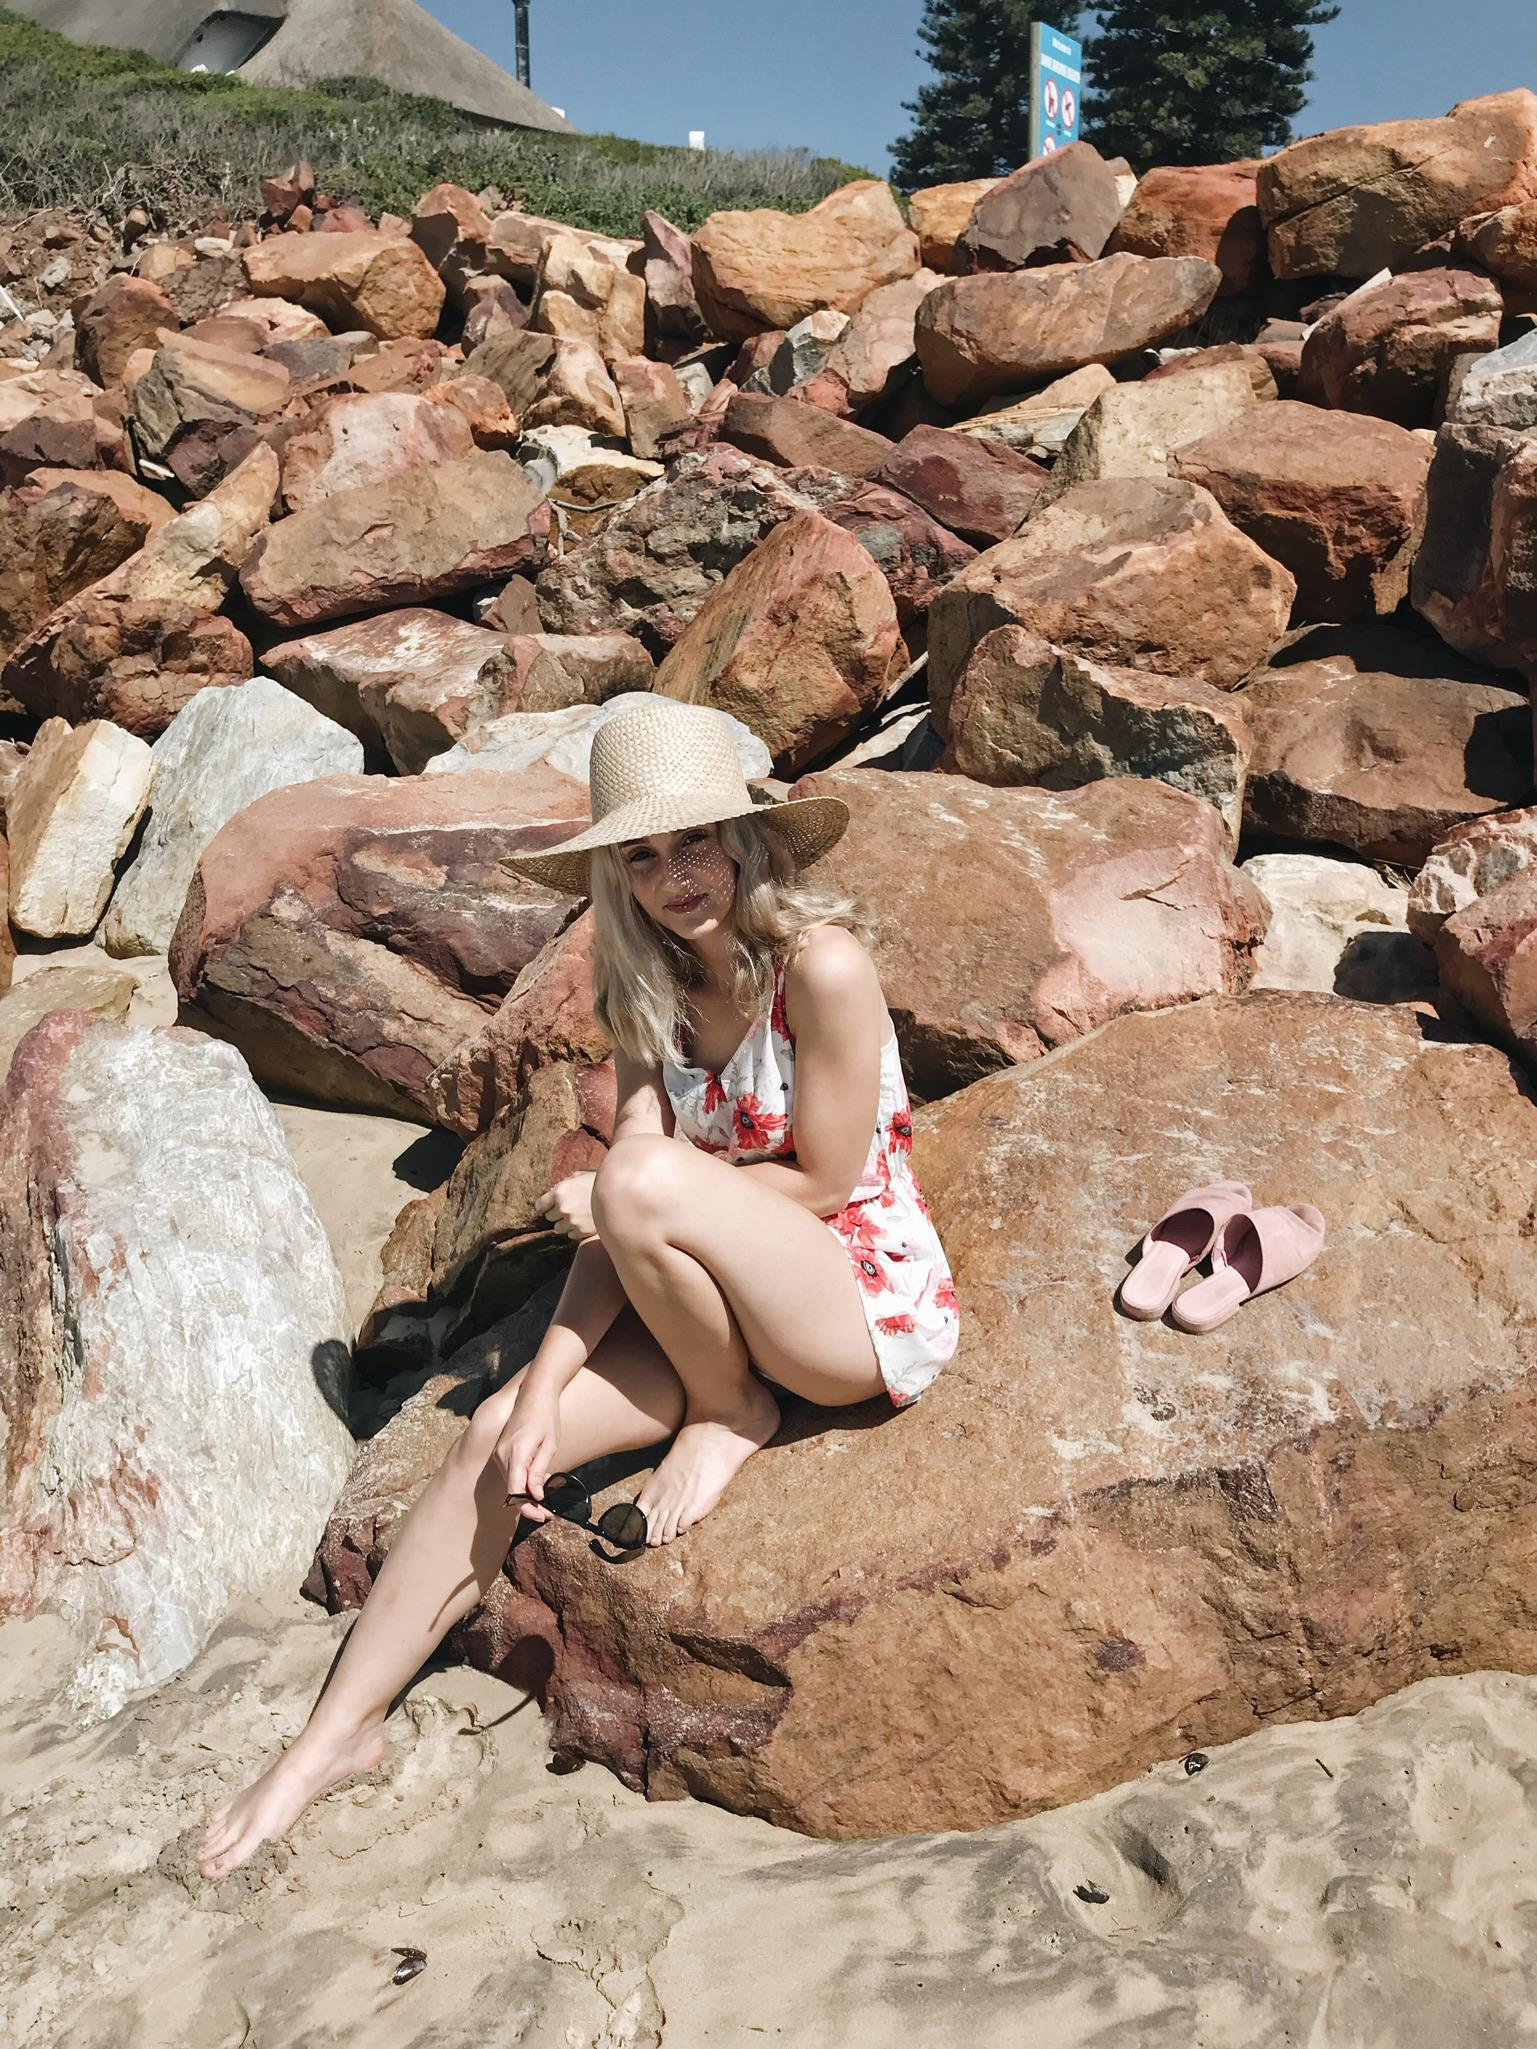 Lauren Carmen sits with her back arched, on the rocks